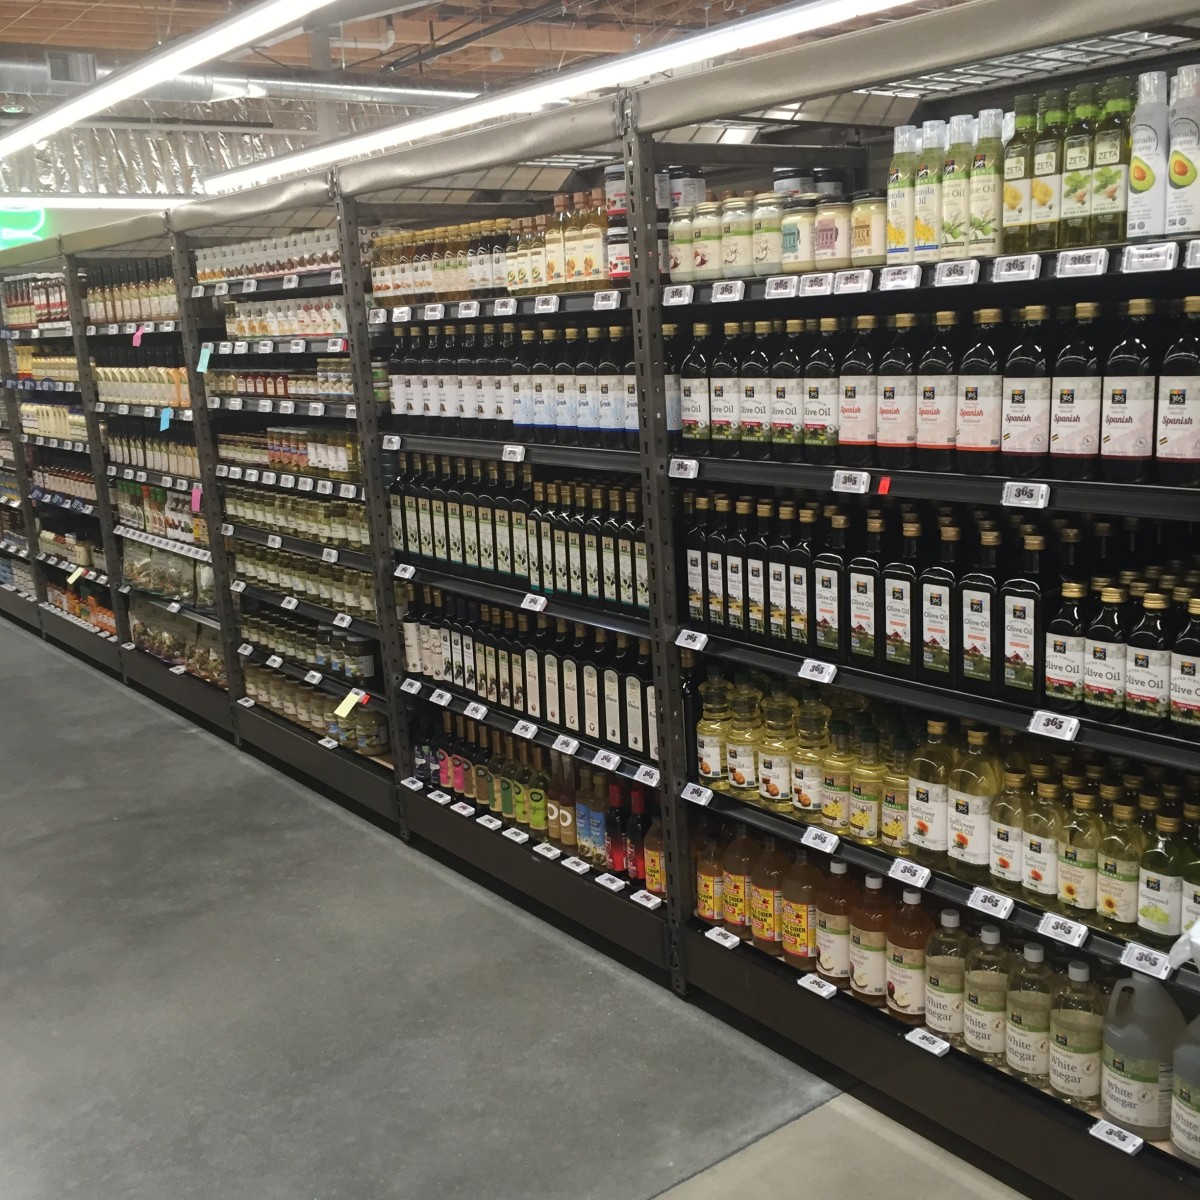 The aisles at 365 are a feast for the eyes.